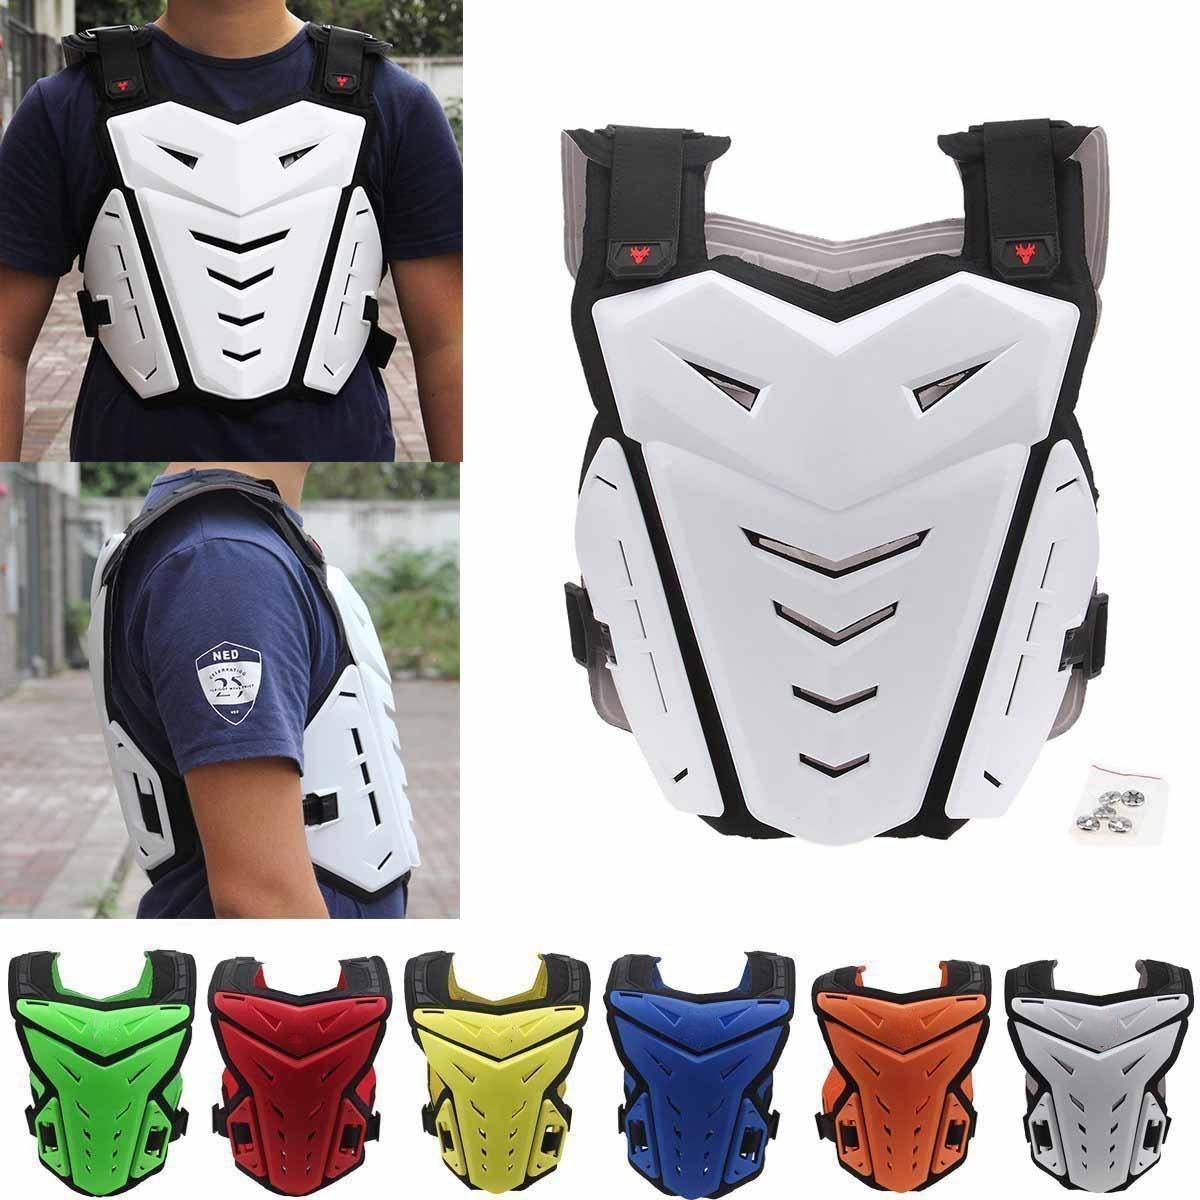 Possbay Chest Back Protector, Body Vest Armor Protective for Motocross Riding Skating Skiing Scooter